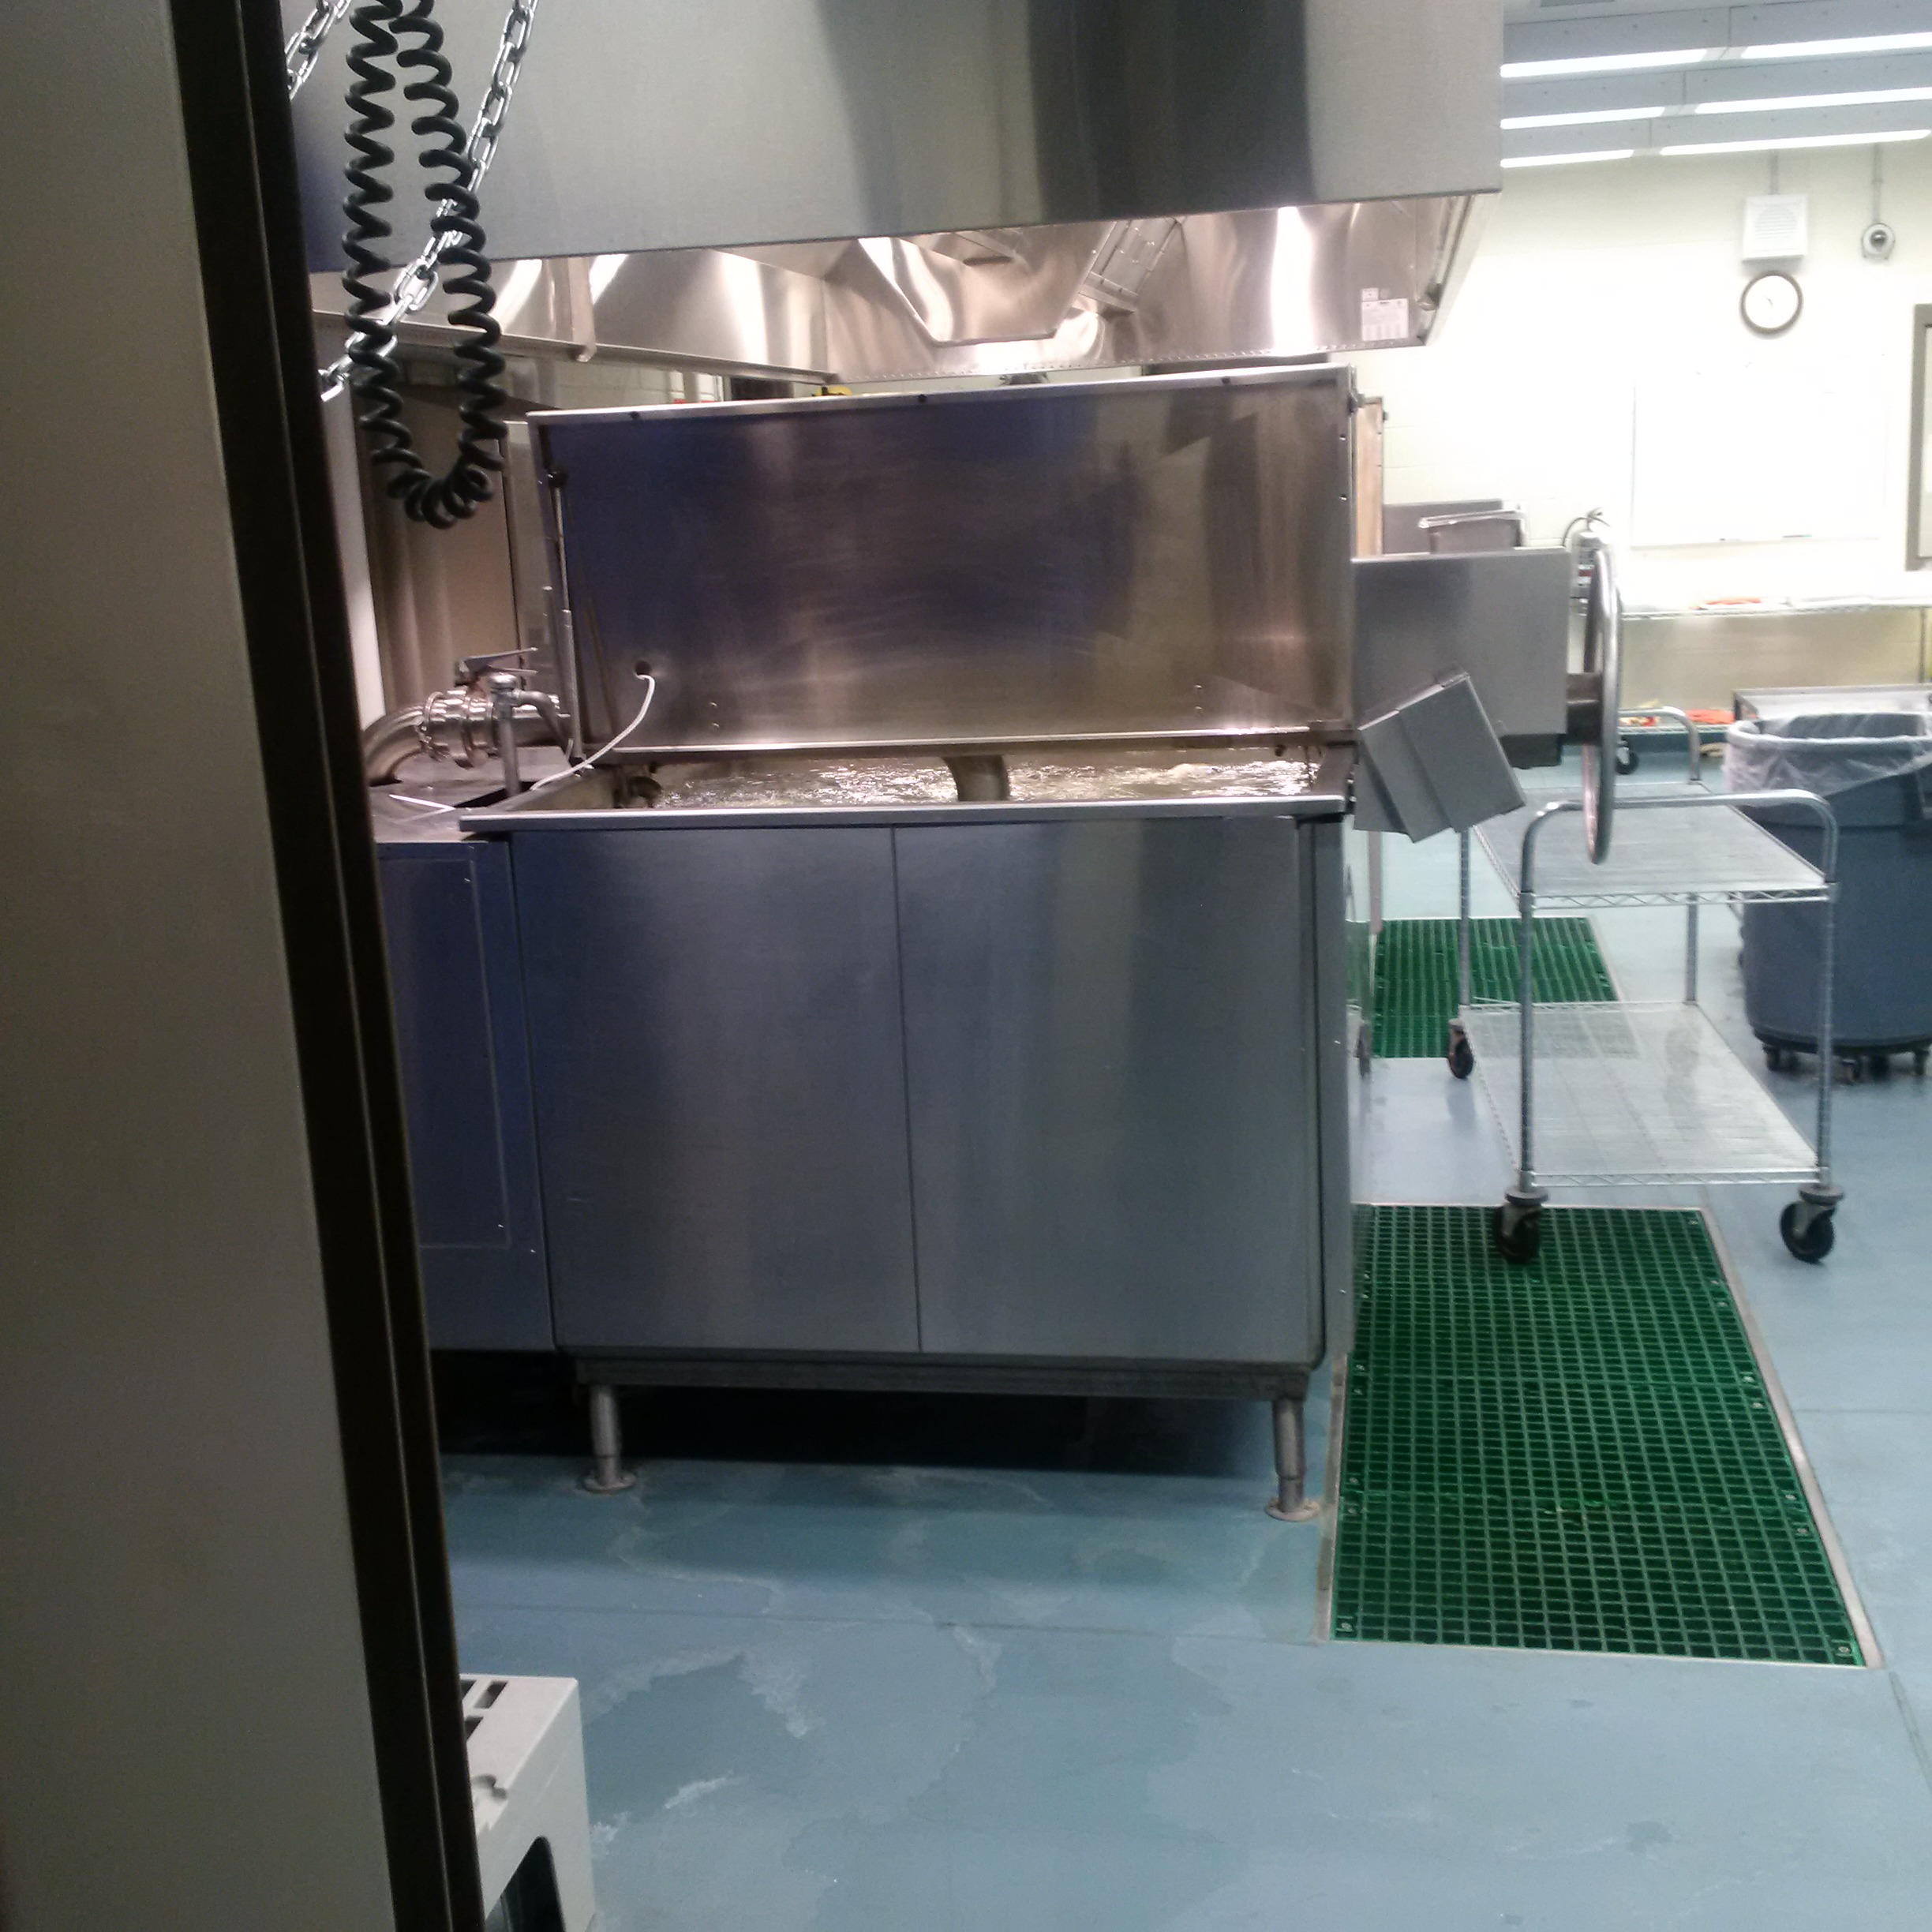 Photos of machinery used to prepare 'cook-chill' meals at Mission Institution